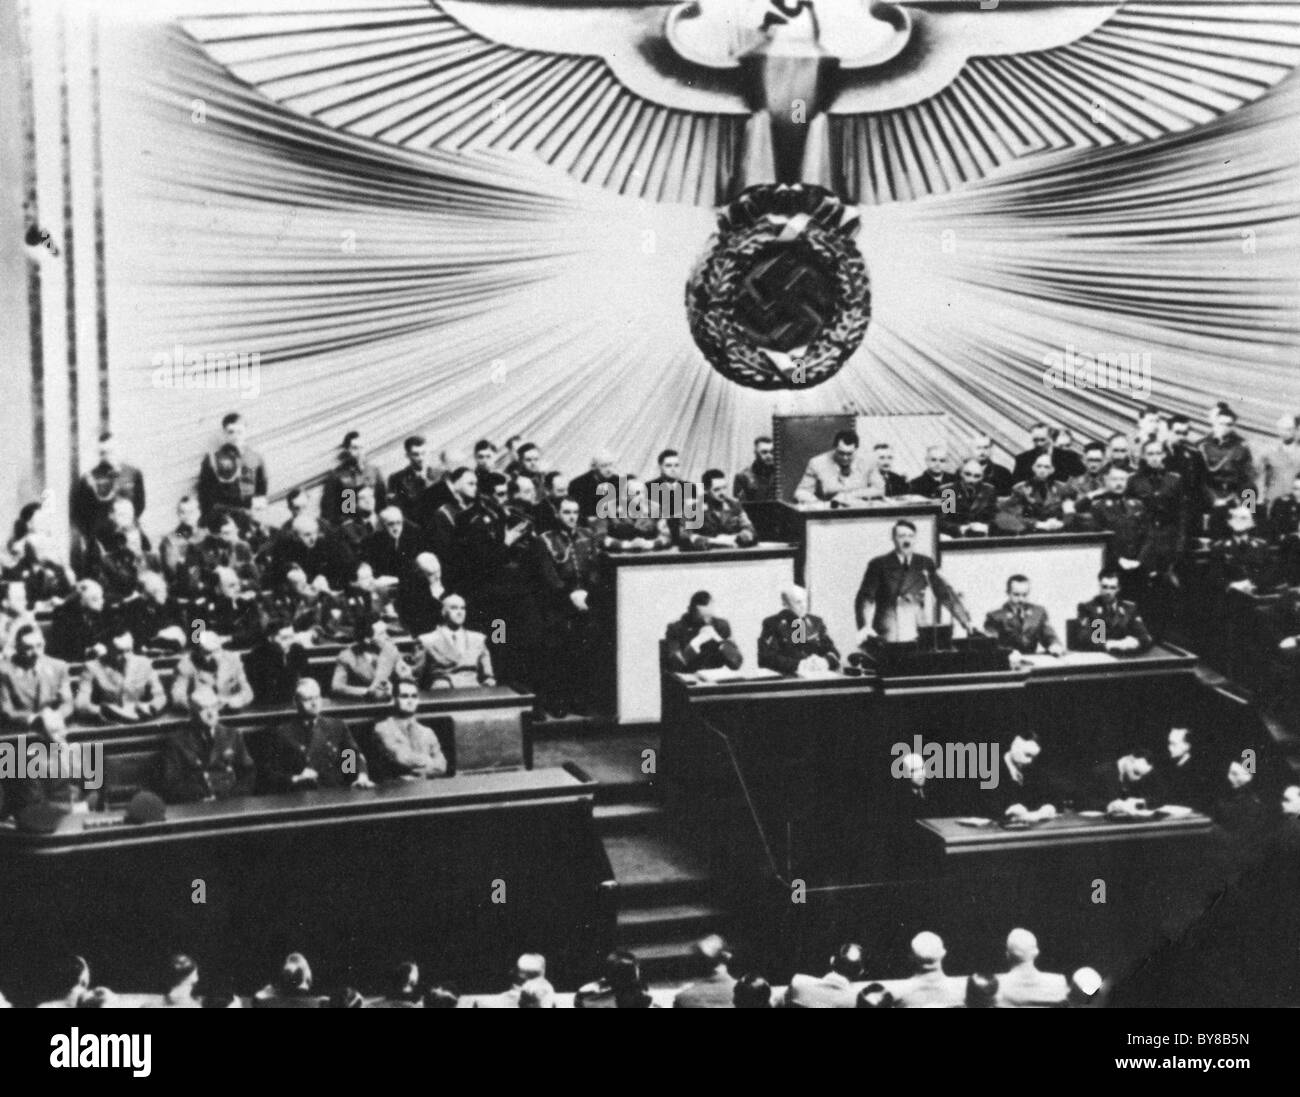 ADOLF HITLER addresses the Reichstag with Goering in light suit presiding behind him - Stock Image